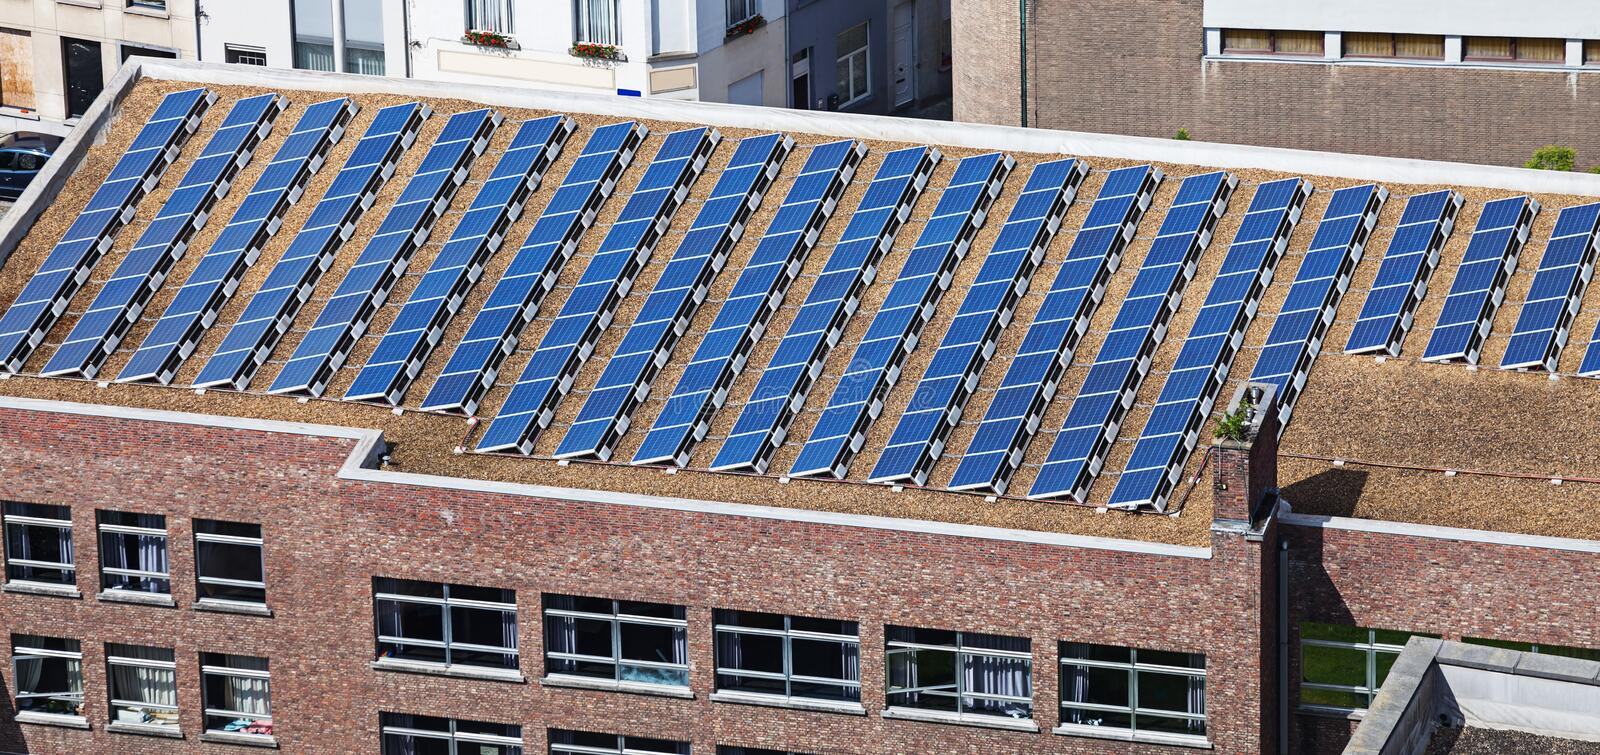 Solar panels on building roof royalty free stock photos